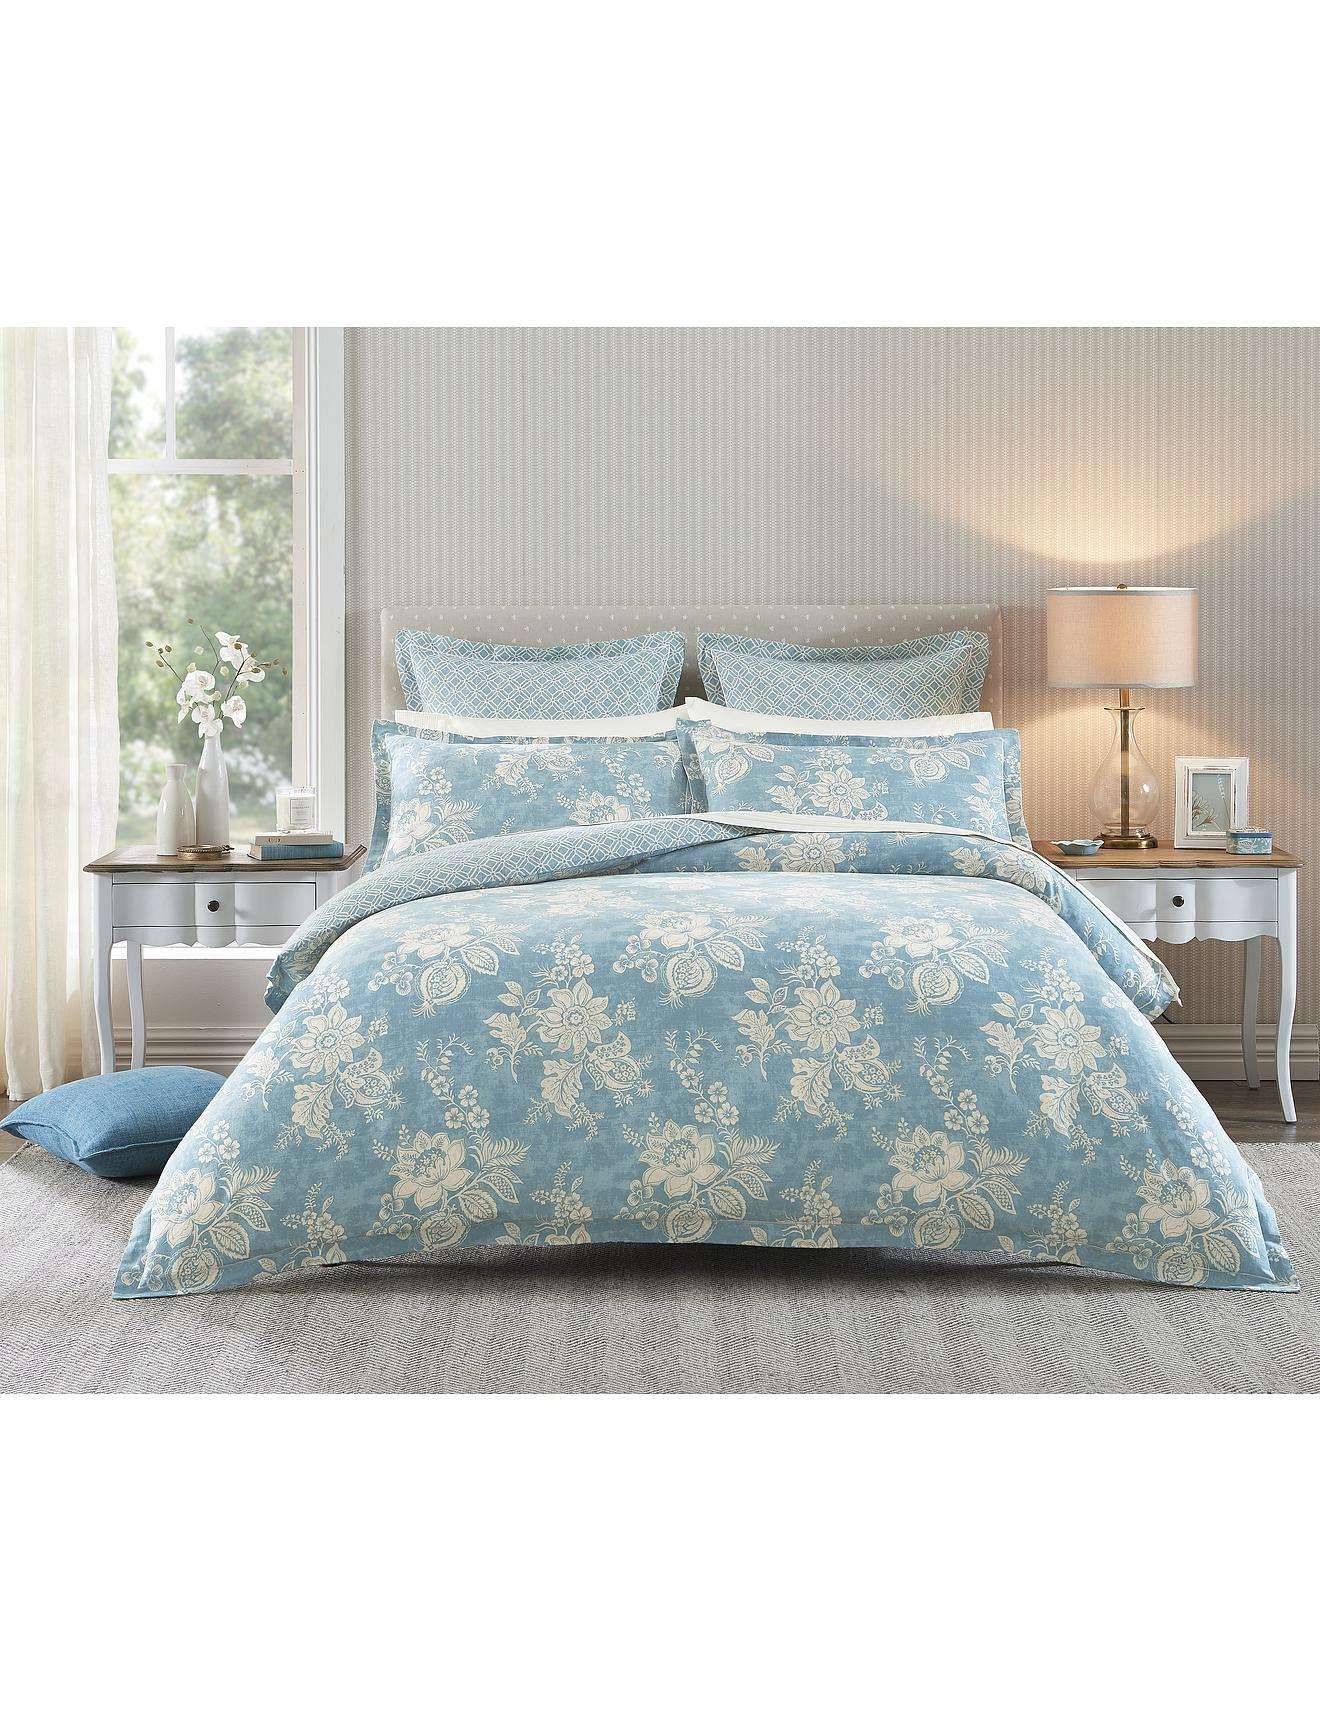 Lyon Quilt Cover Queen | David Jones | quilt covers | Pinterest ... : quilt cover sets david jones - Adamdwight.com